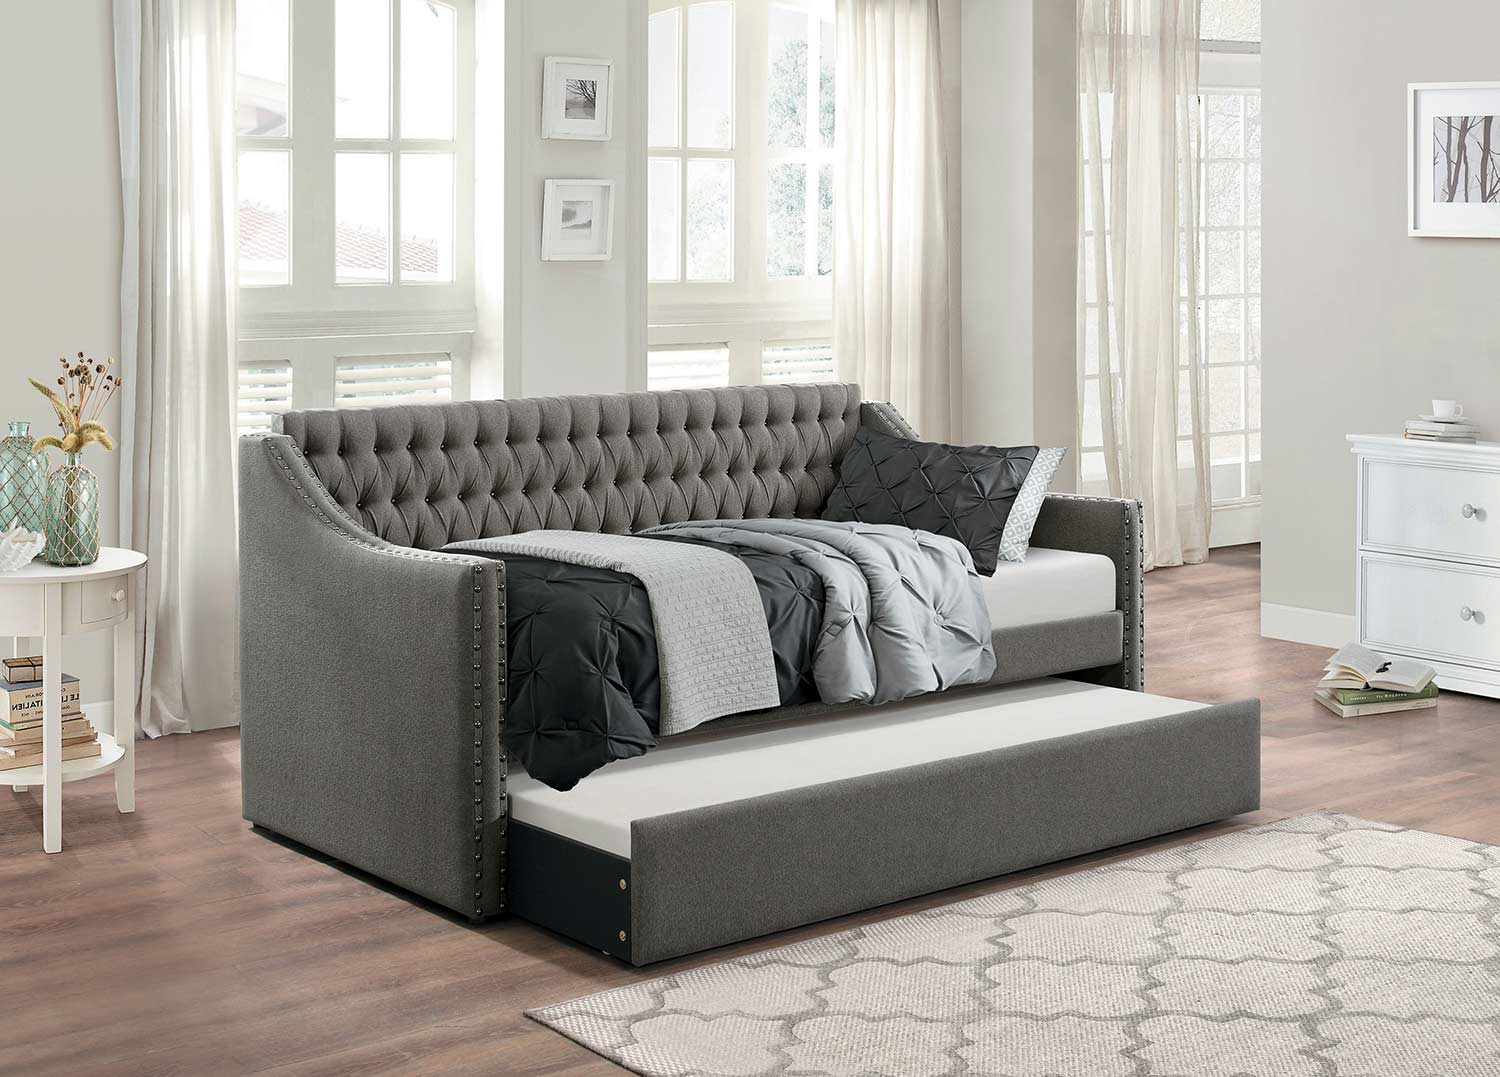 Homelegance Tulney Button Tufted Upholstered Daybed with Trundle - - Dark Gray